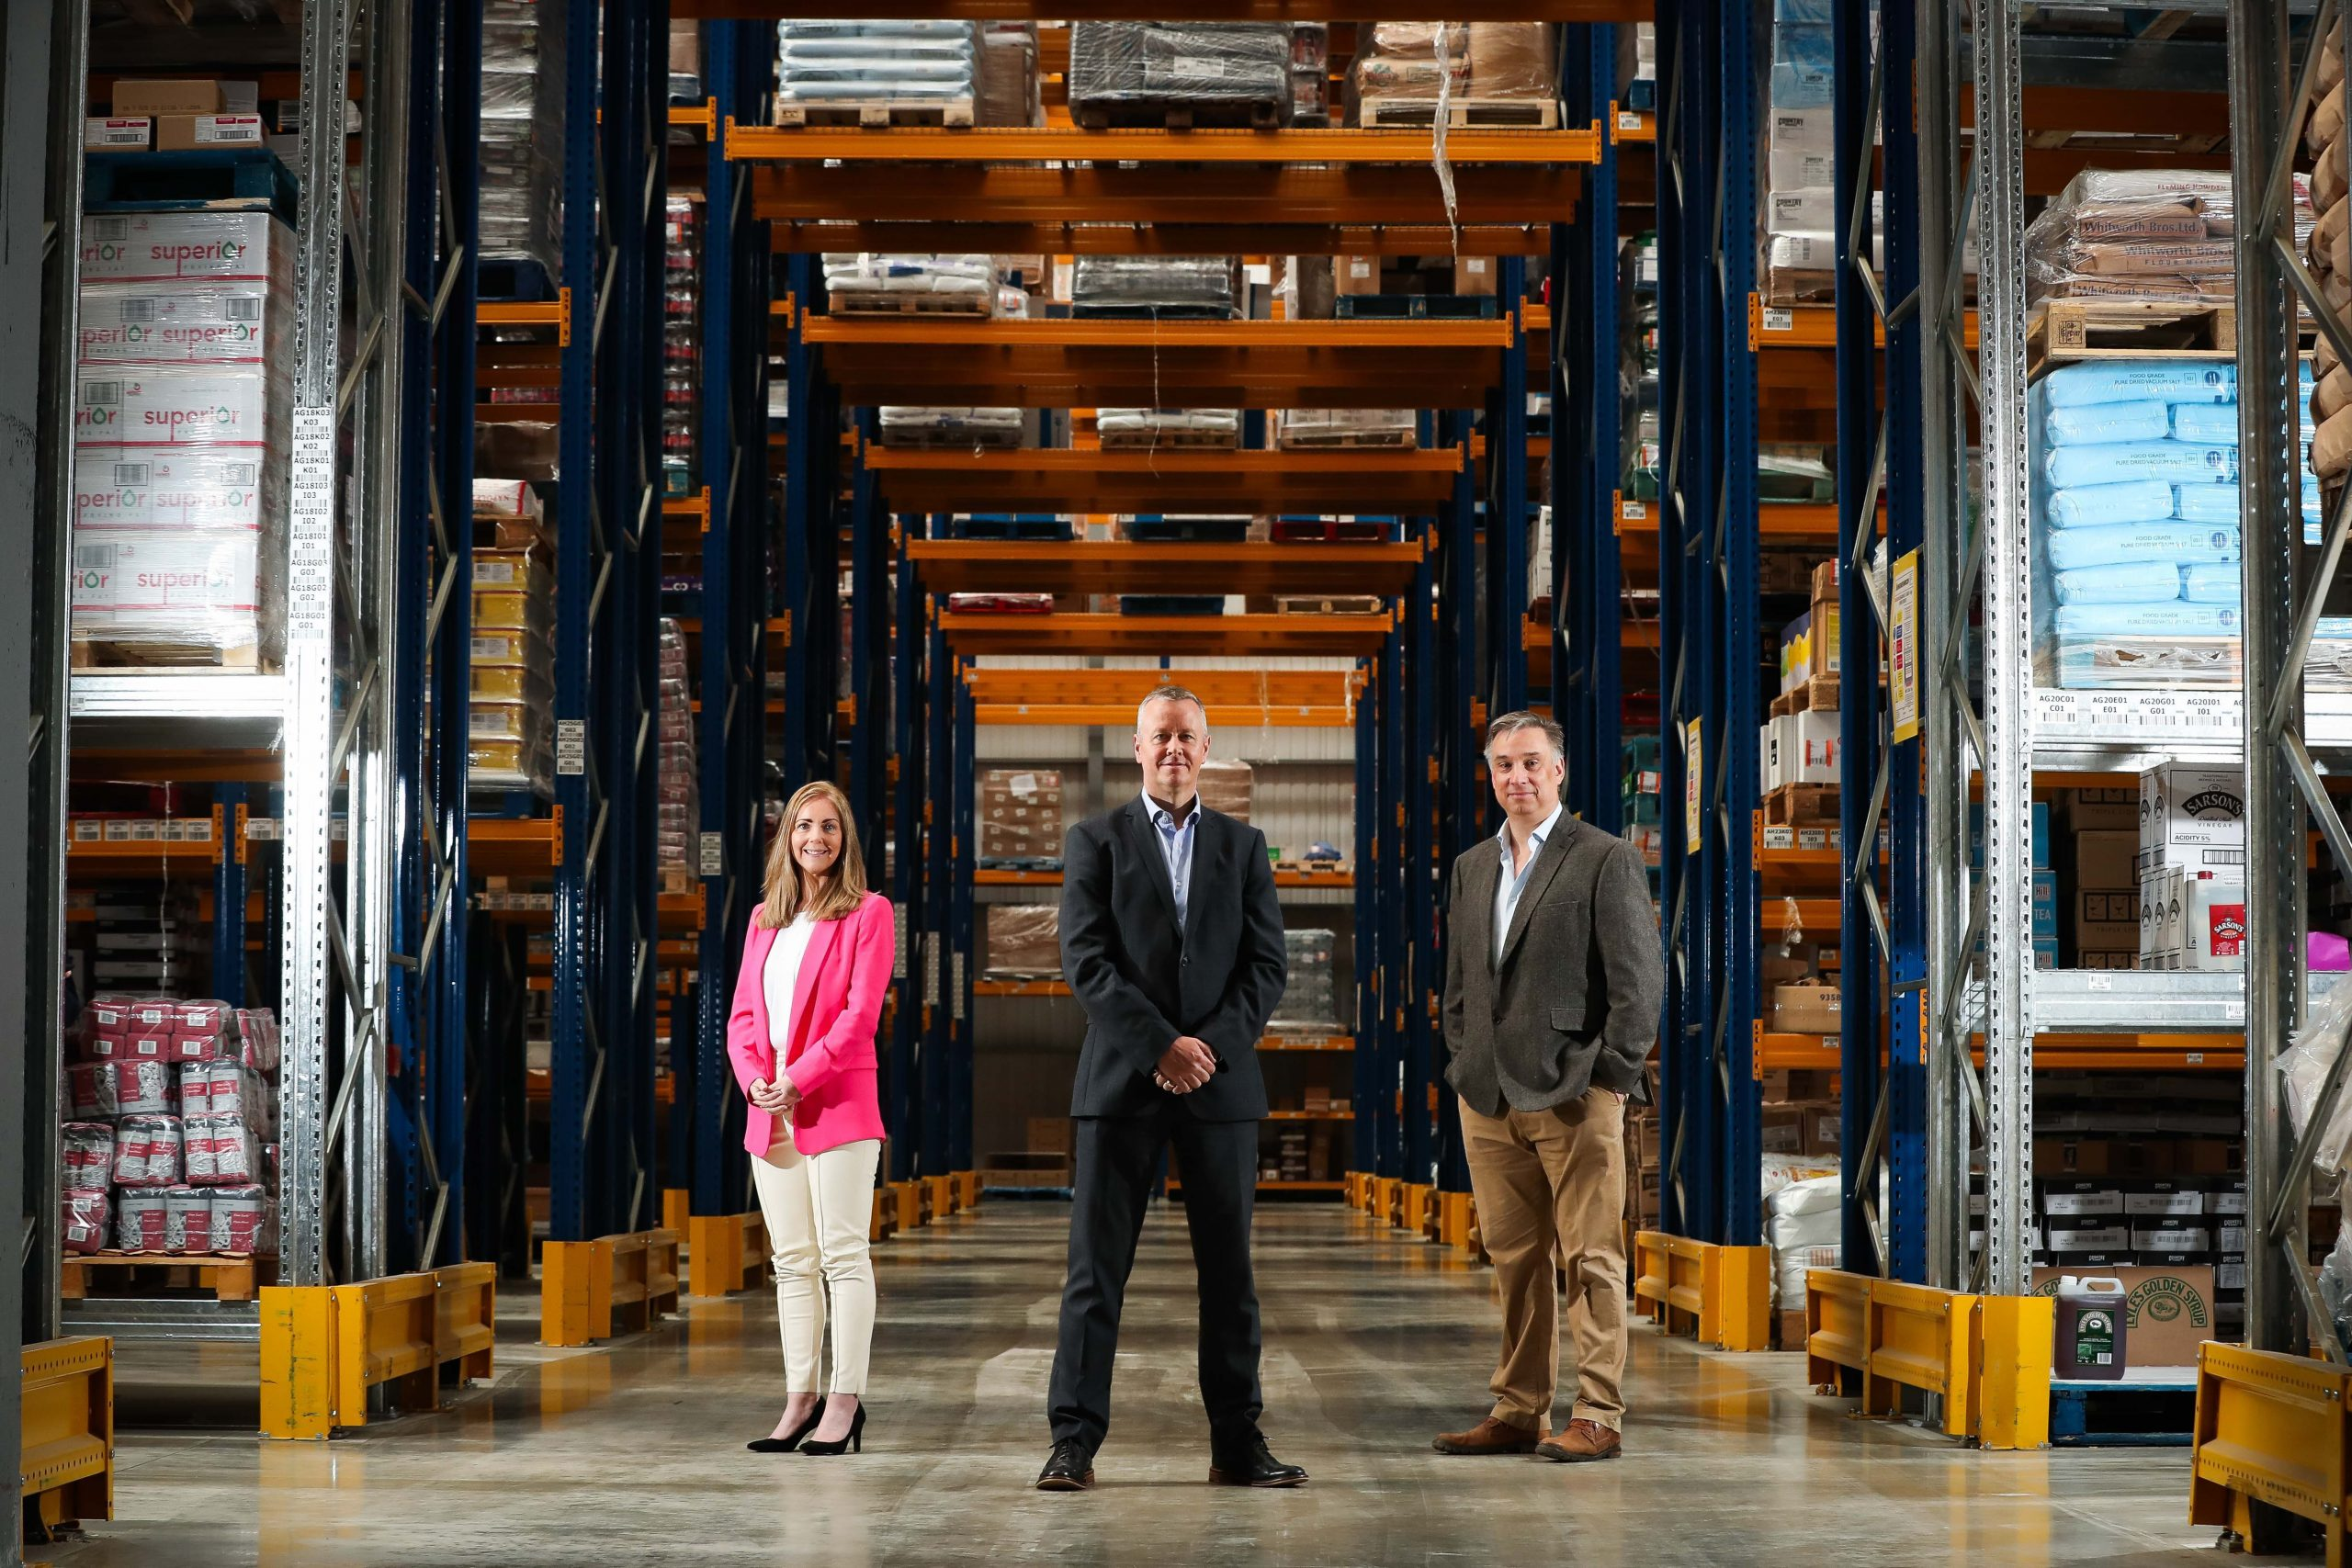 Henderson Foodservice invests £16 million in new warehouse